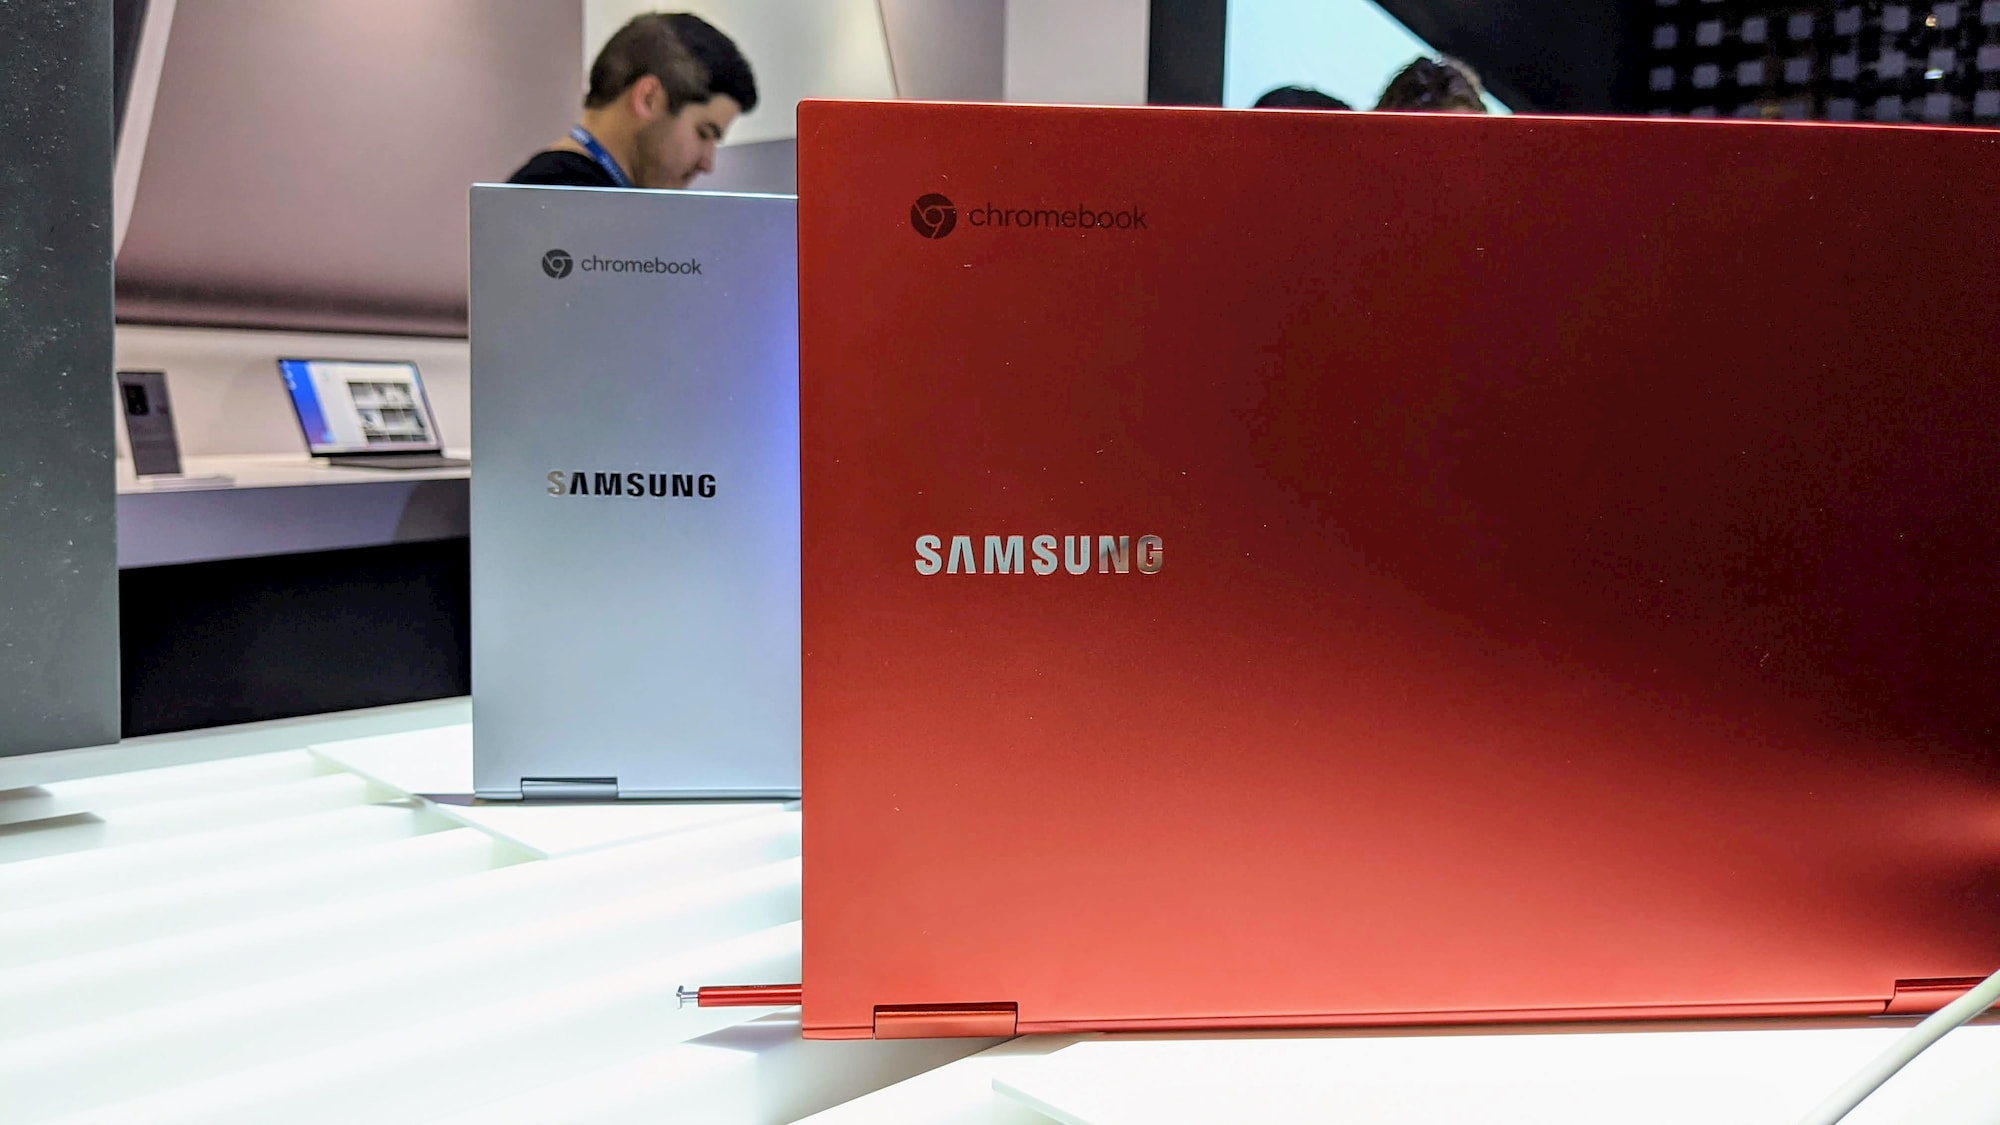 All in a name: why the Samsung Galaxy Chromebook's title matters